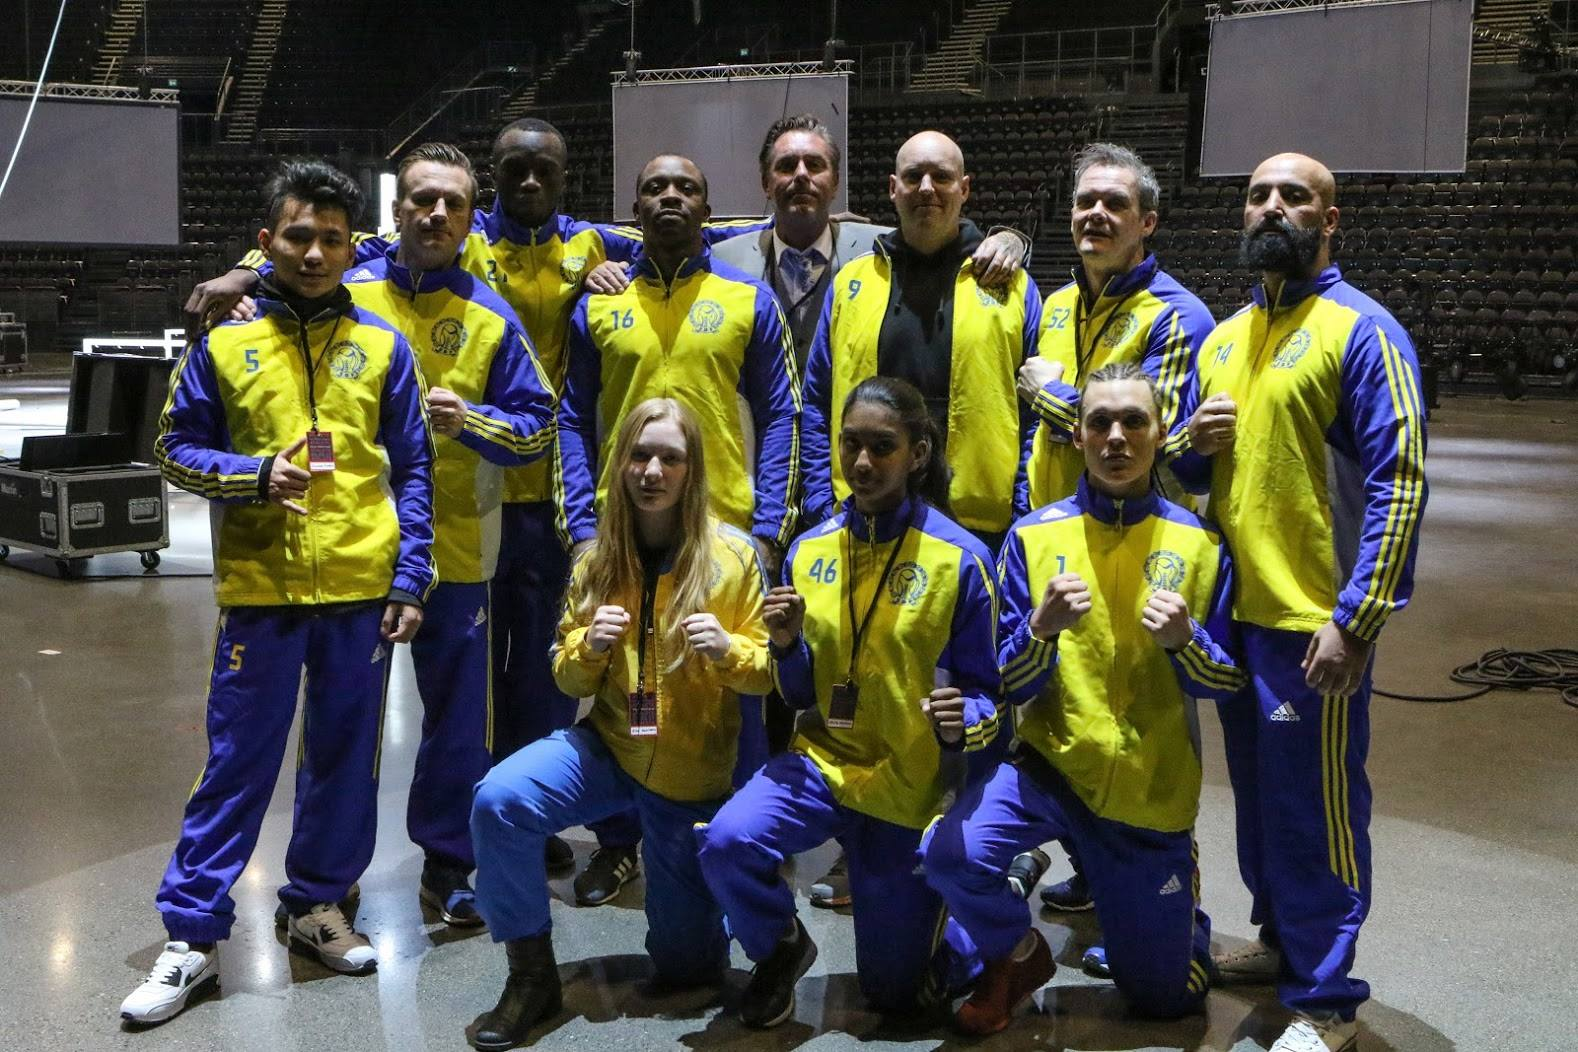 Team Sverige, The Nordic Rumble 2017